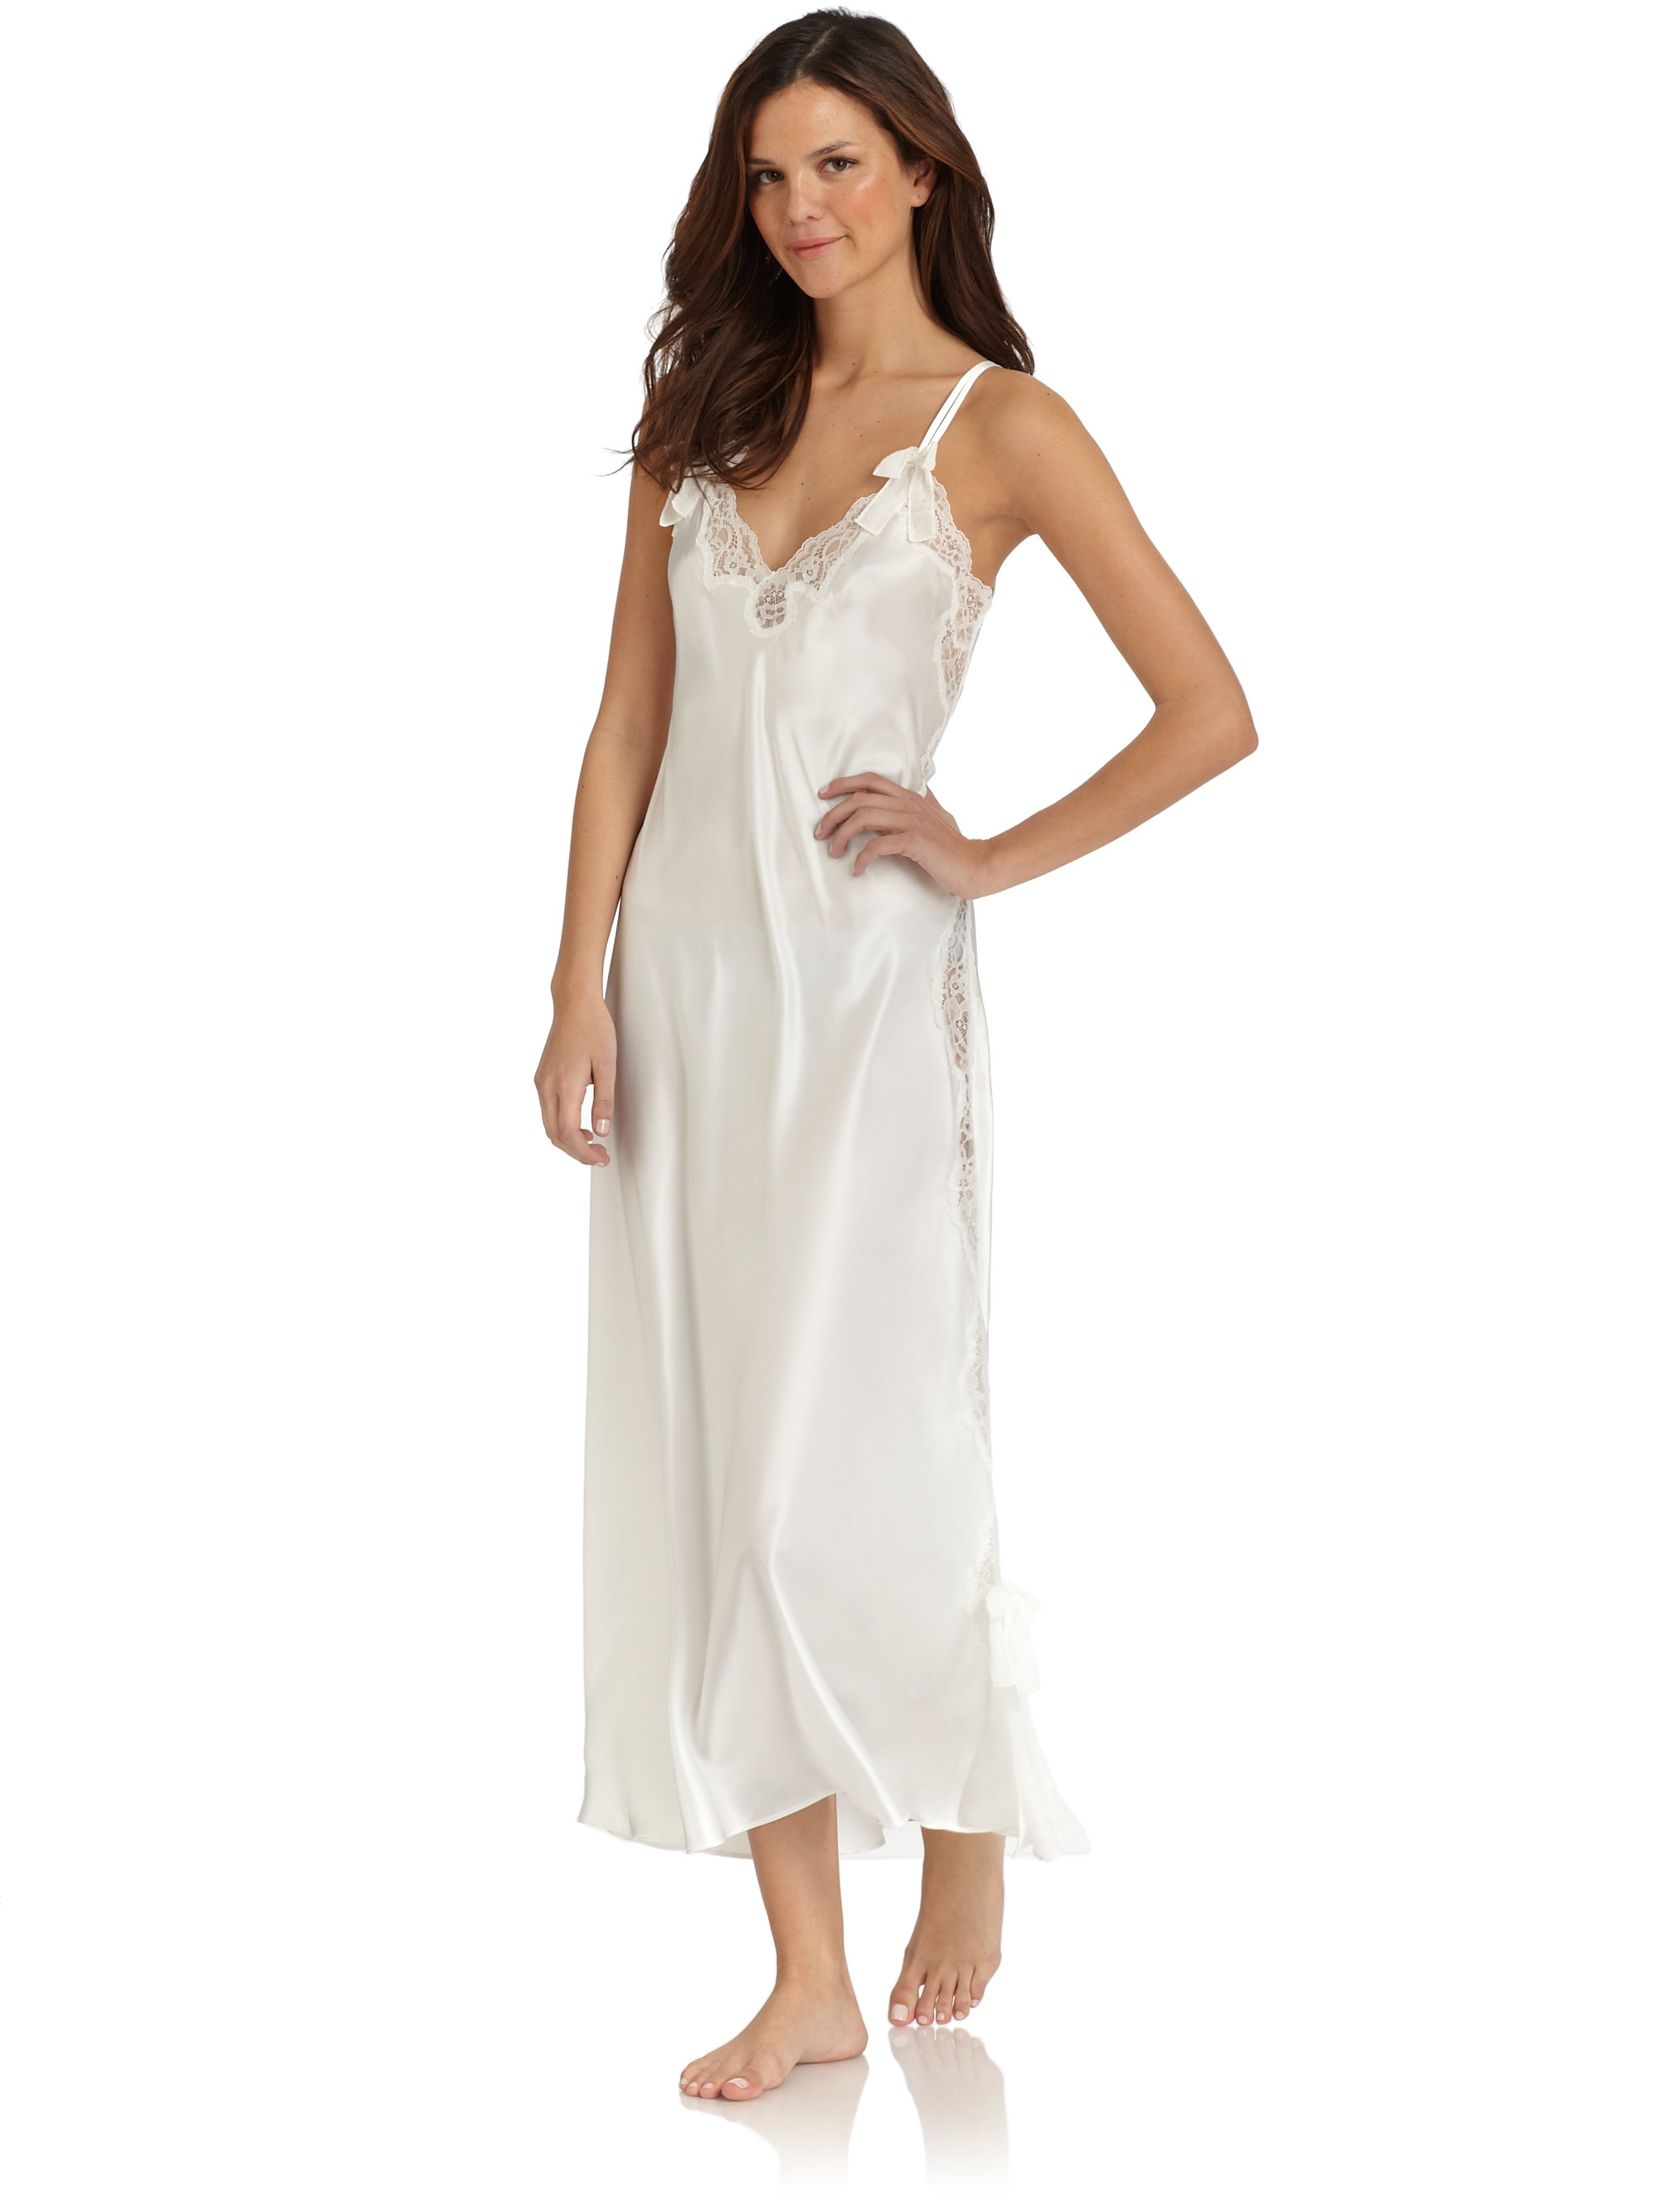 Find great deals on eBay for satin pajamas. Shop with confidence.